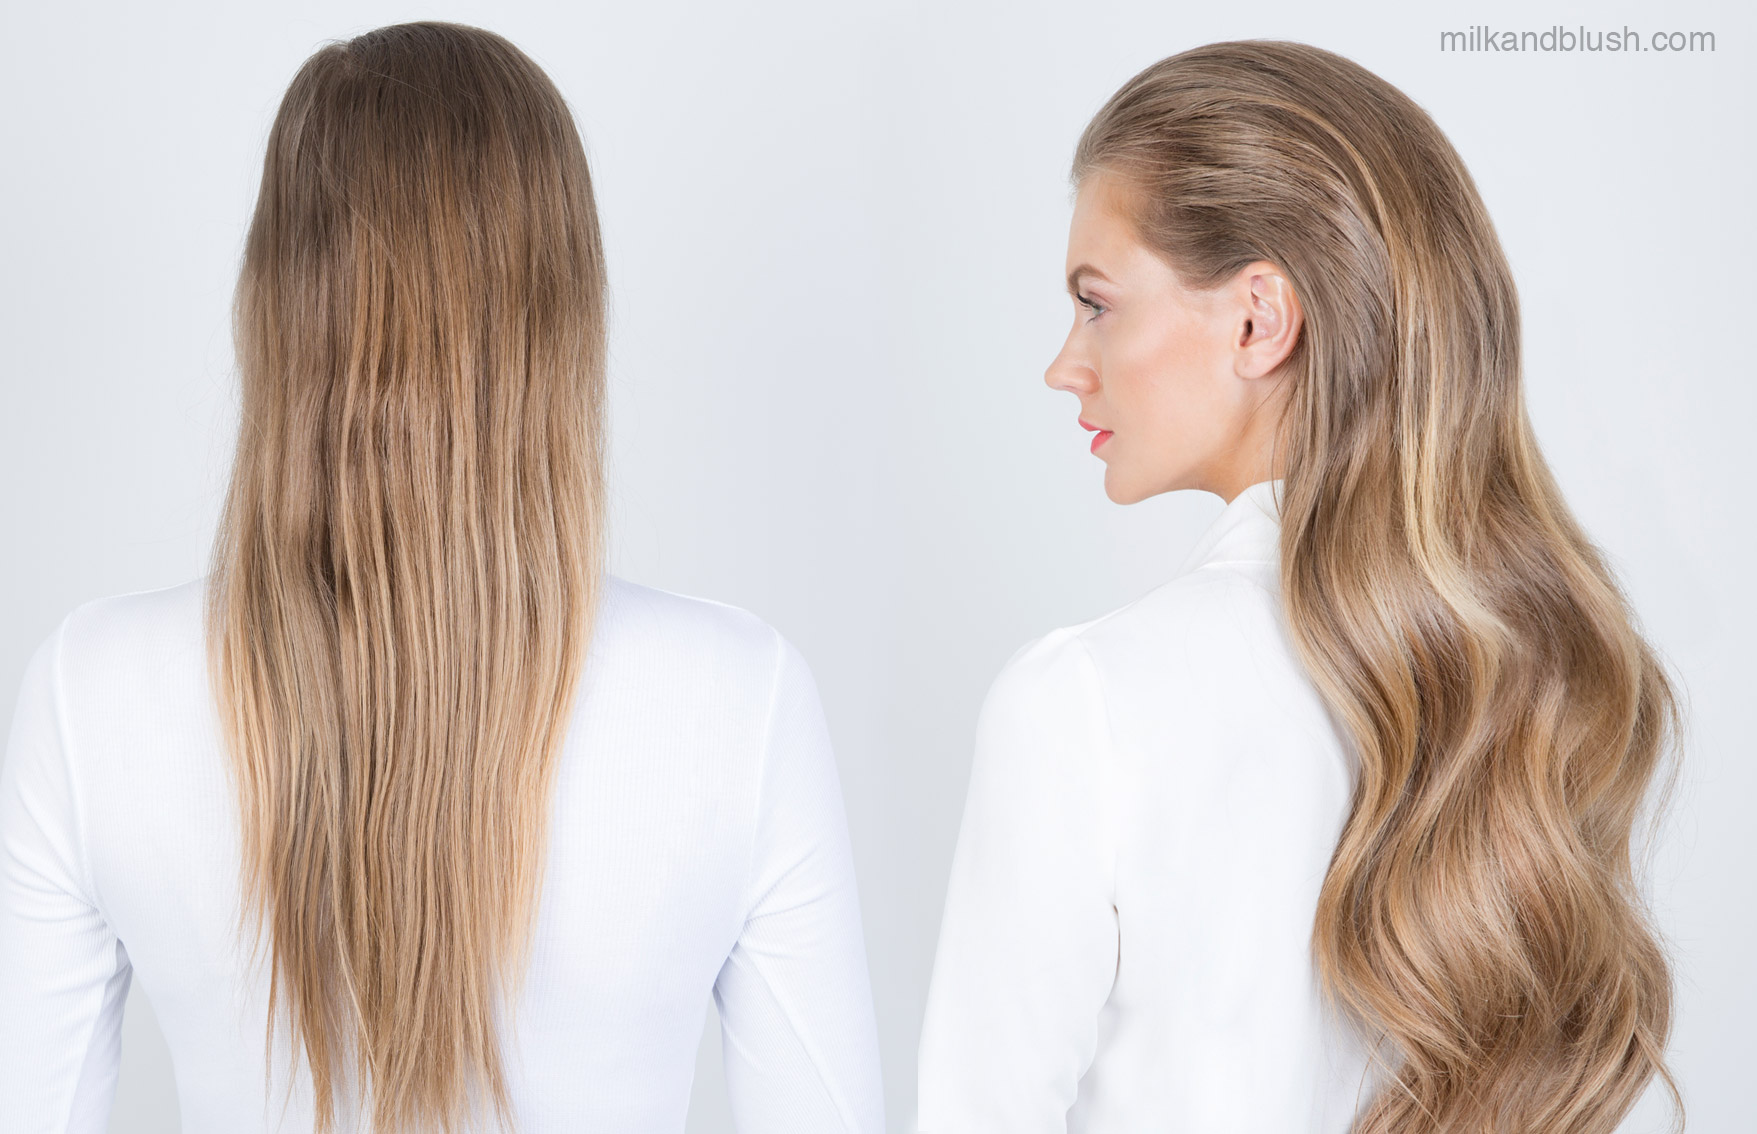 How To Make Your Hair Extensions Look Natural Hair Extensions Blog